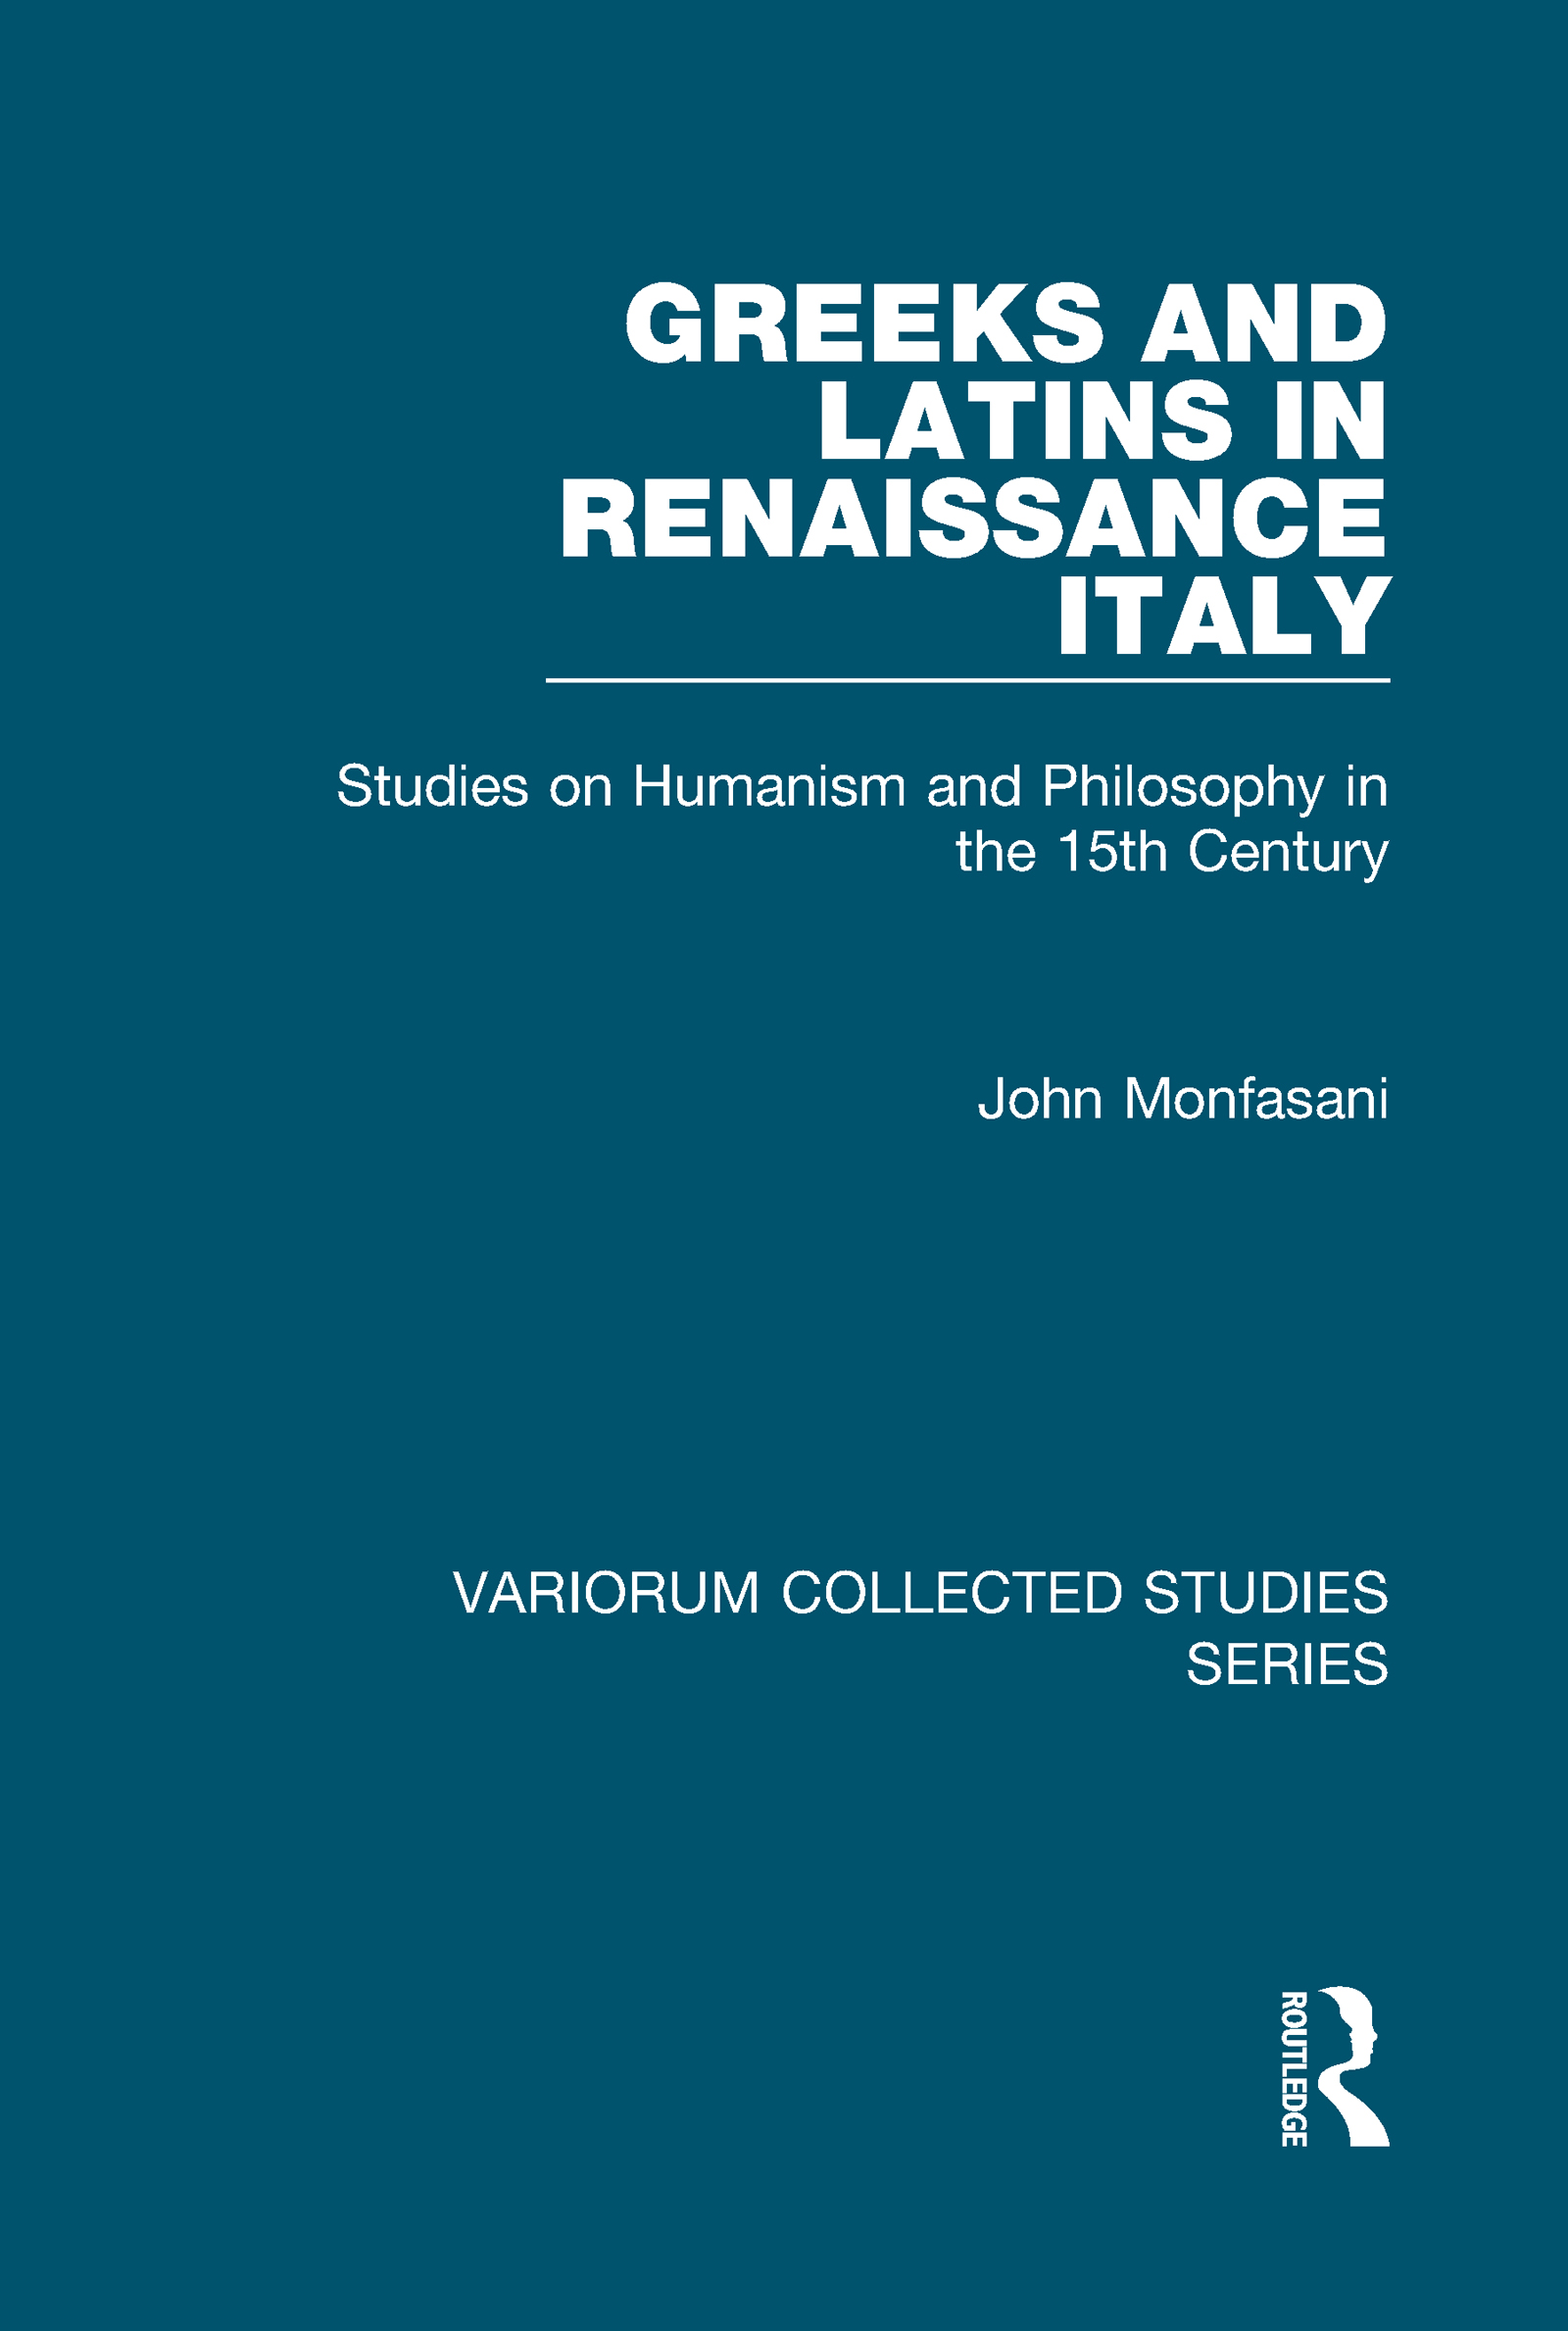 Greeks and Latins in Renaissance Italy